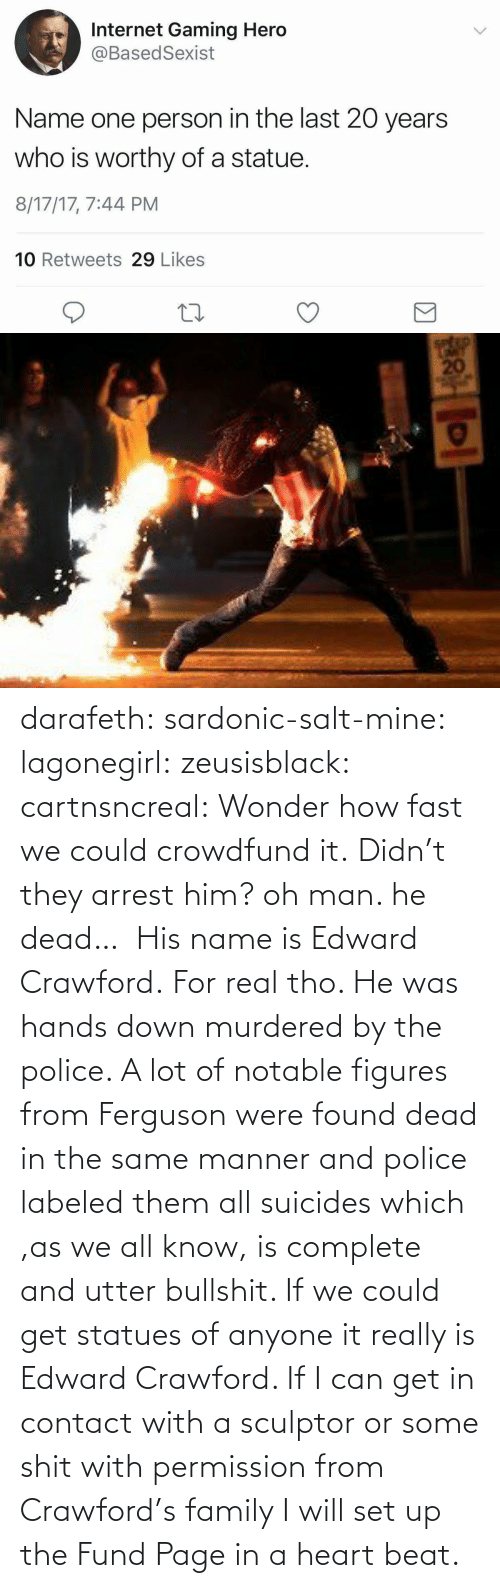 hands: darafeth: sardonic-salt-mine:  lagonegirl:  zeusisblack:  cartnsncreal:   Wonder how fast we could crowdfund it.    Didn't they arrest him?  oh man. he dead…   His name is Edward Crawford.   For real tho. He was hands down murdered by the police. A lot of notable figures from Ferguson were found dead in the same manner and police labeled them all suicides which ,as we all know, is complete and utter bullshit.  If we could get statues of anyone it really is Edward Crawford. If I can get in contact with a sculptor or some shit with permission from Crawford's family I will set up the Fund Page in a heart beat.